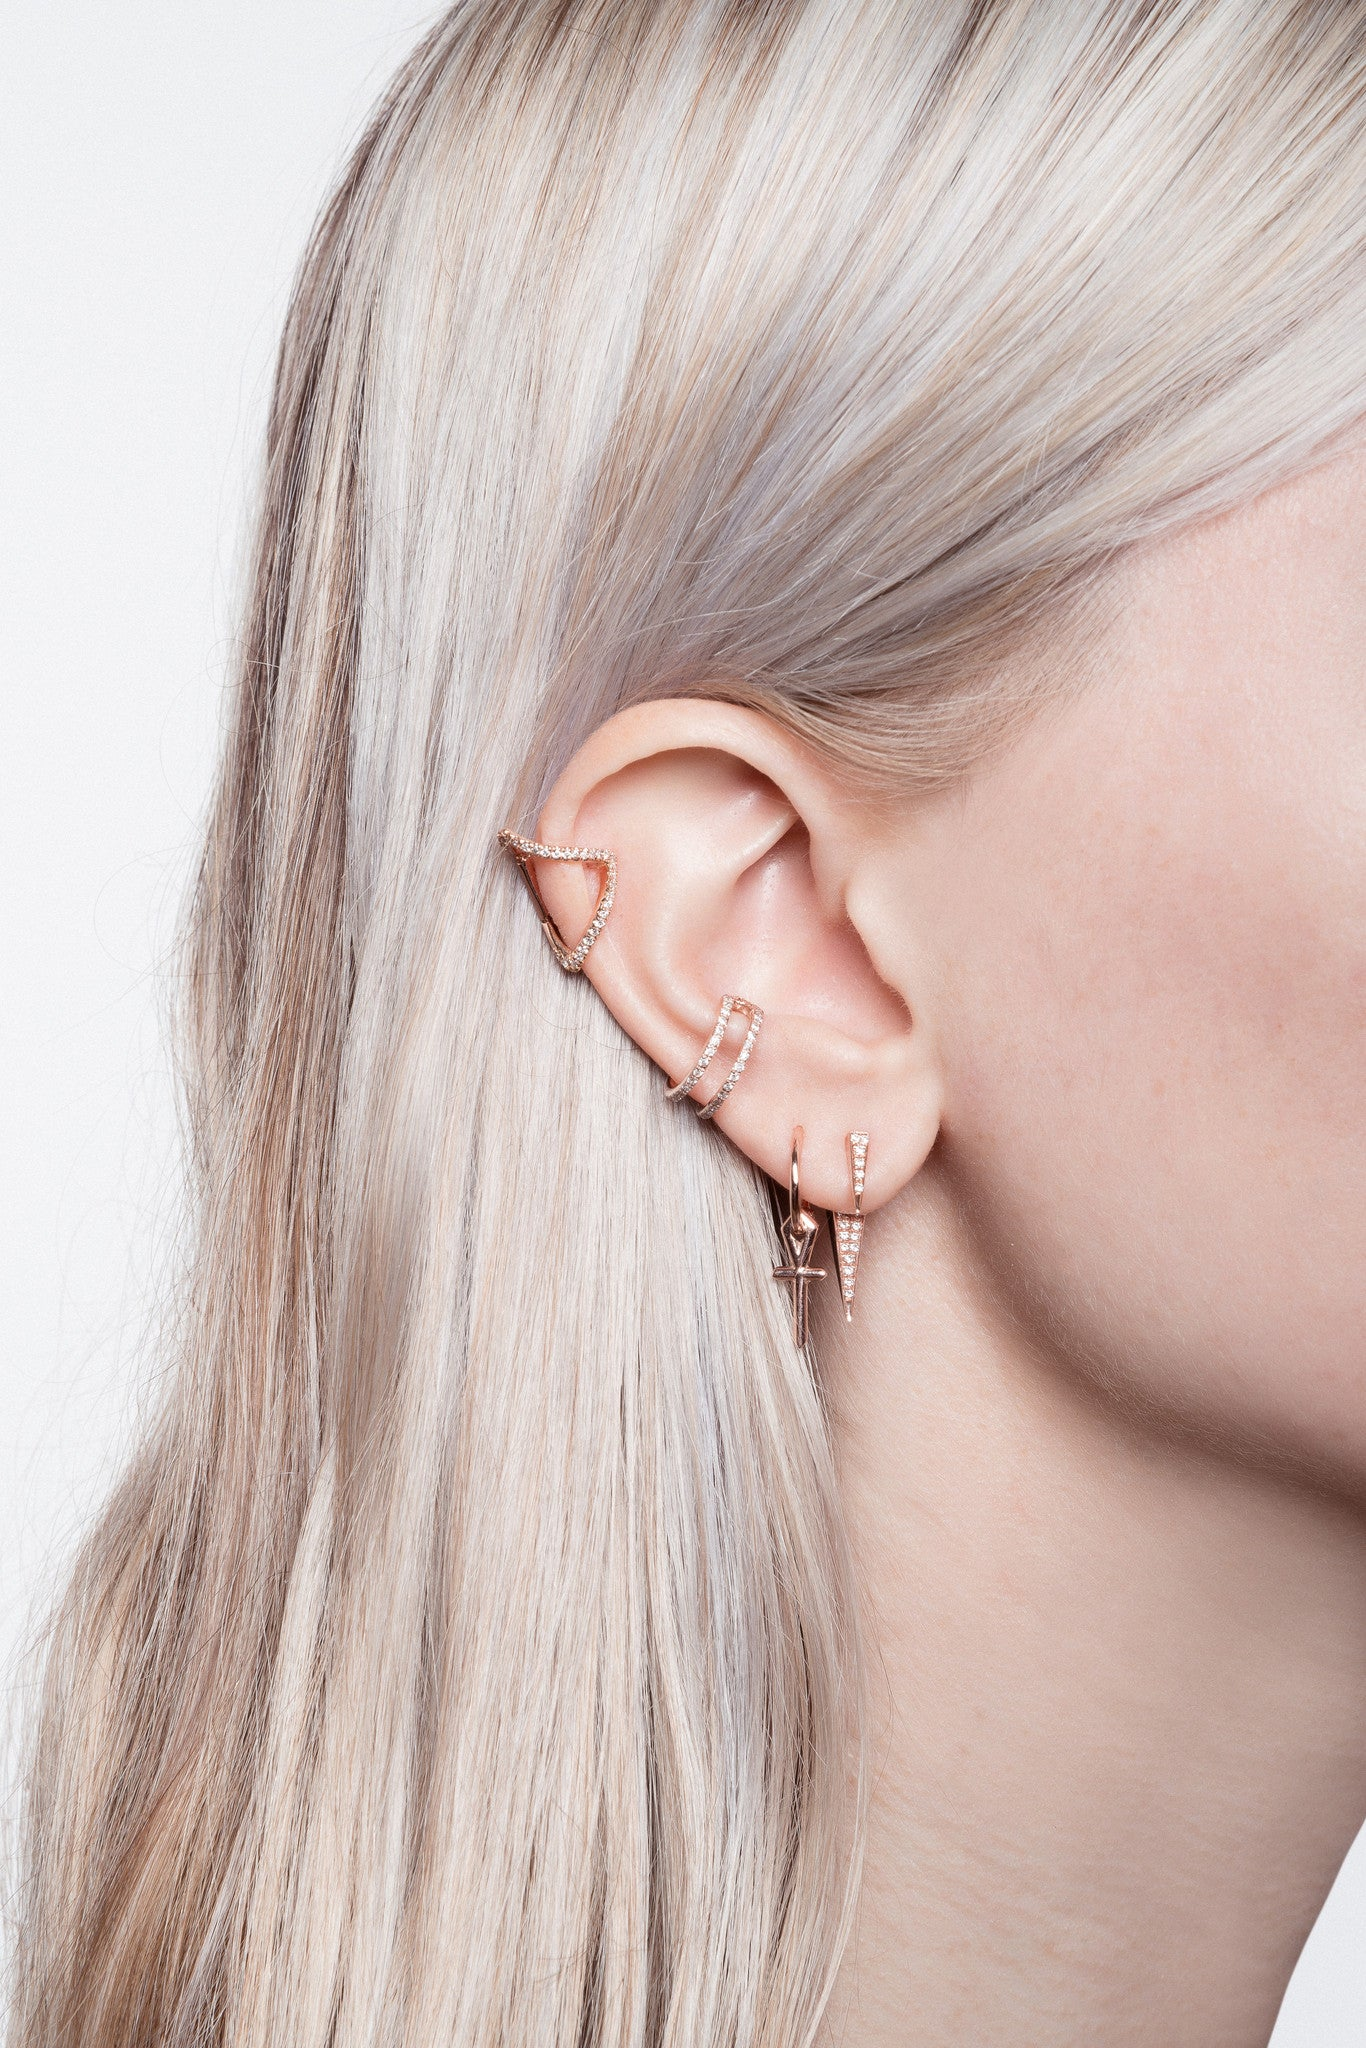 Chain Link Ear Cuff Micro Pave Diamond White Black Diamonds No Piercing Orbital Inner Conch Helix Simple Delicate Double Ring Hoops Single Earring Wendy Nichol fine jewelry designer solid 14k Yellow, Rose, or White Gold Handmade in NYC New York City